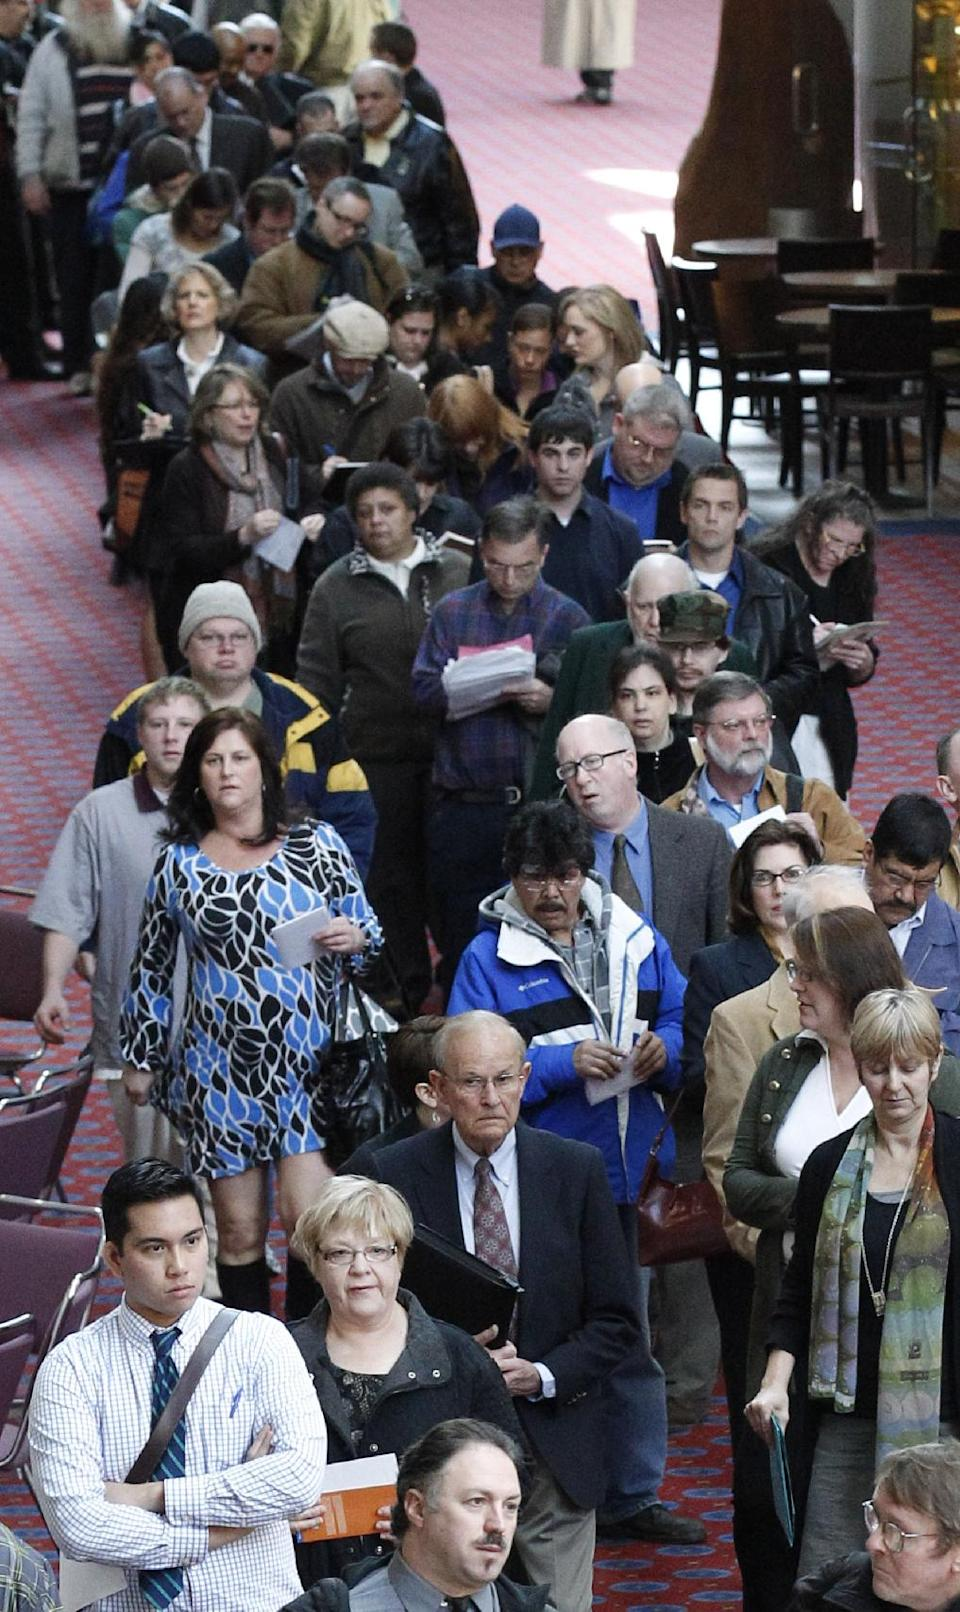 File - In a March 7, 2012, file photo  job seekers stand in line during the Career Expo job fair, in Portland, Ore.  Economists predict employers added 163,000 jobs in April. That would be better than the disappointing 120,000 jobs created in March.    (AP Photo/Rick Bowmer)